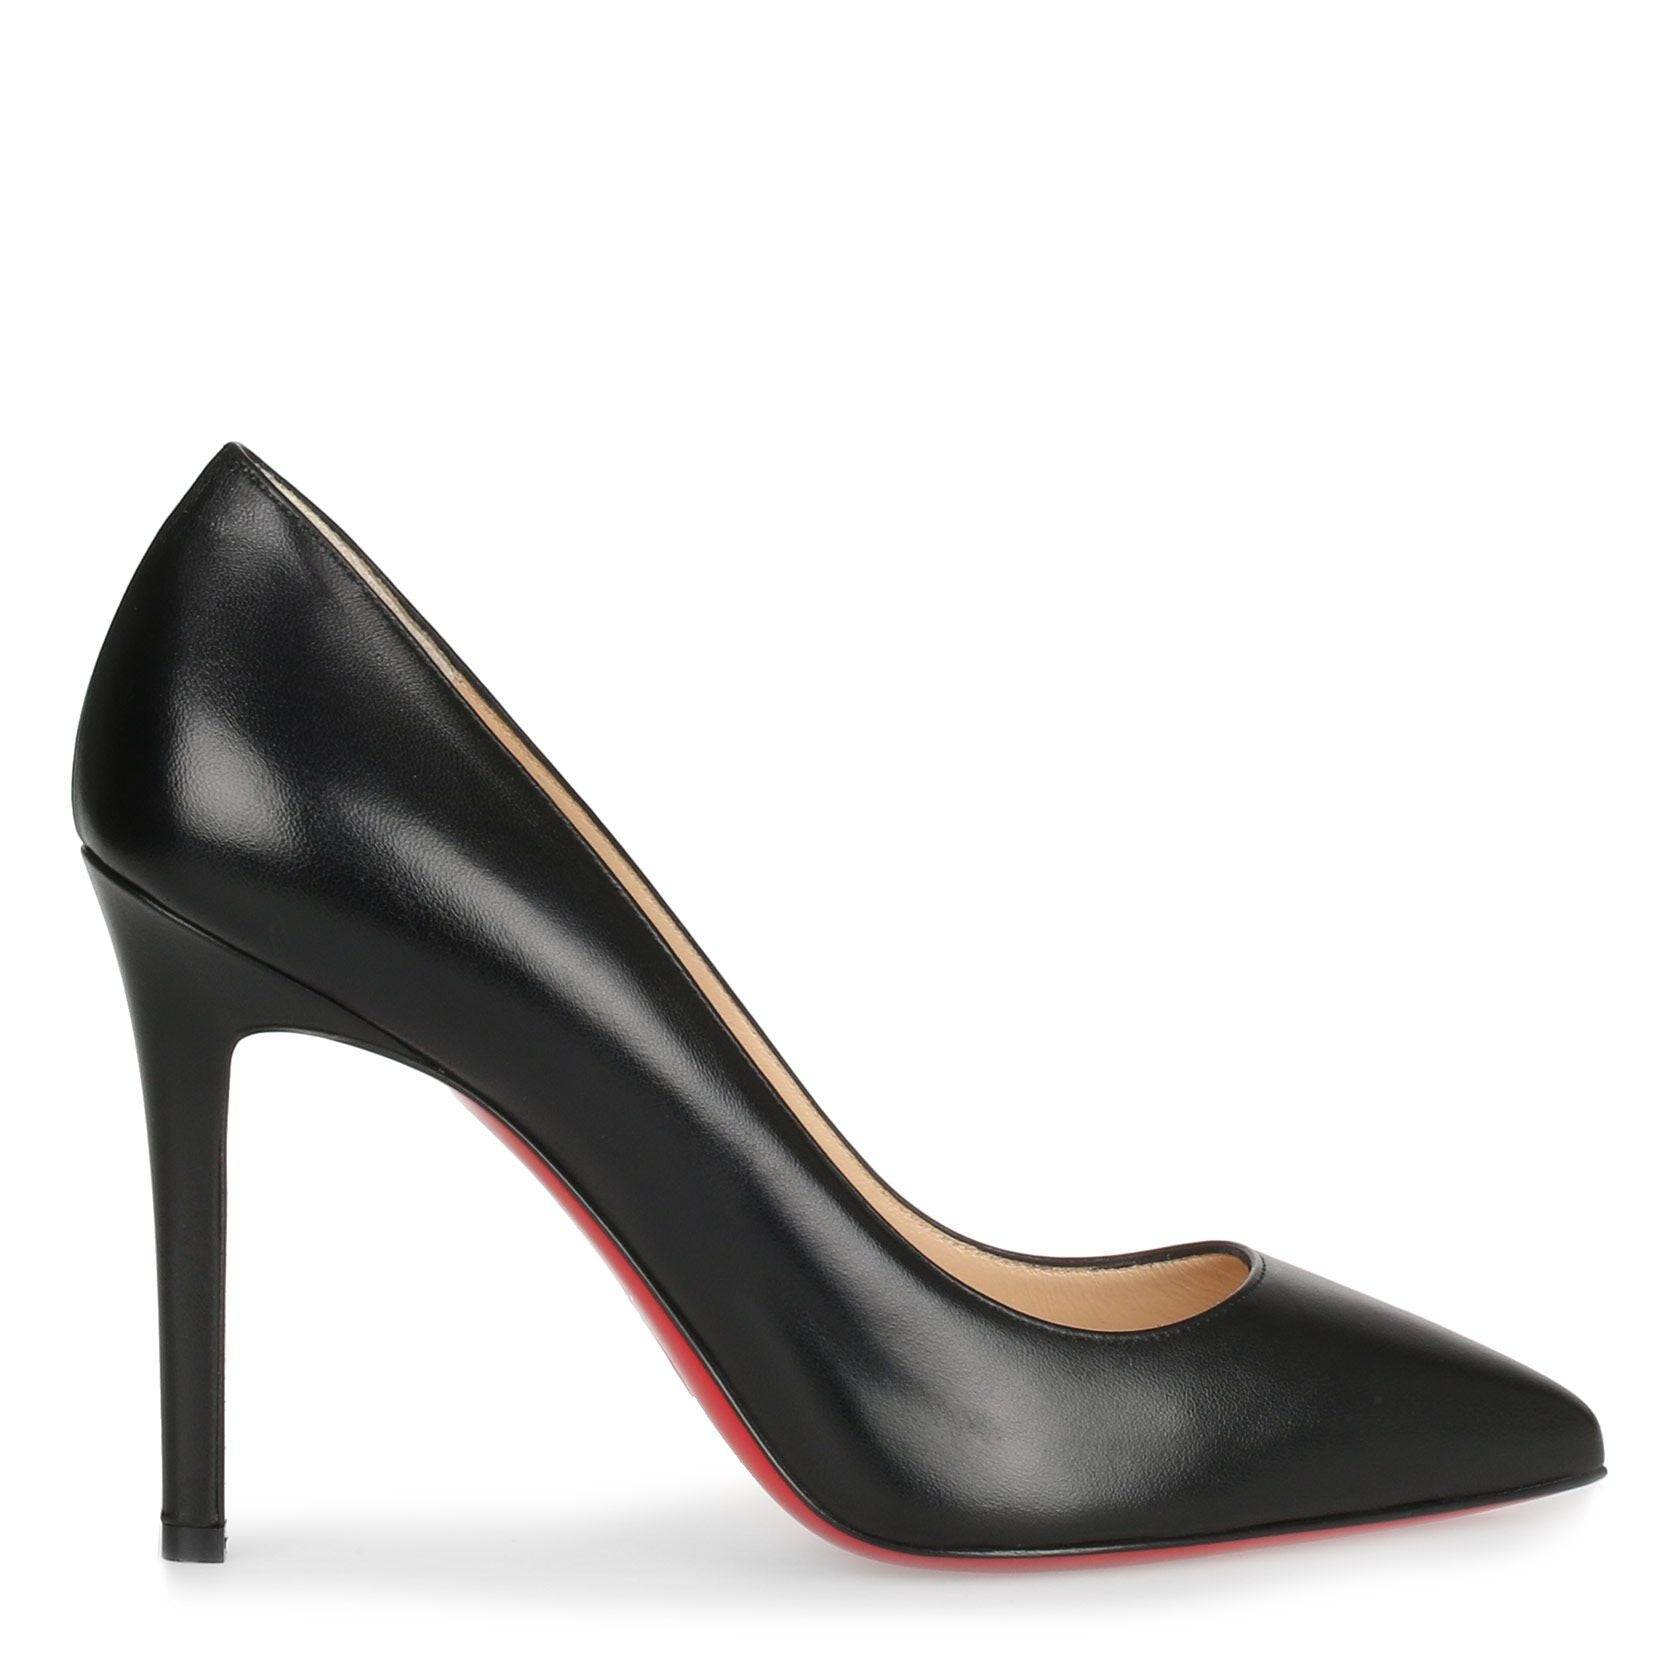 Christian Louboutin Pigalle 100 black leather pump  - Black - female - Size: 40.5